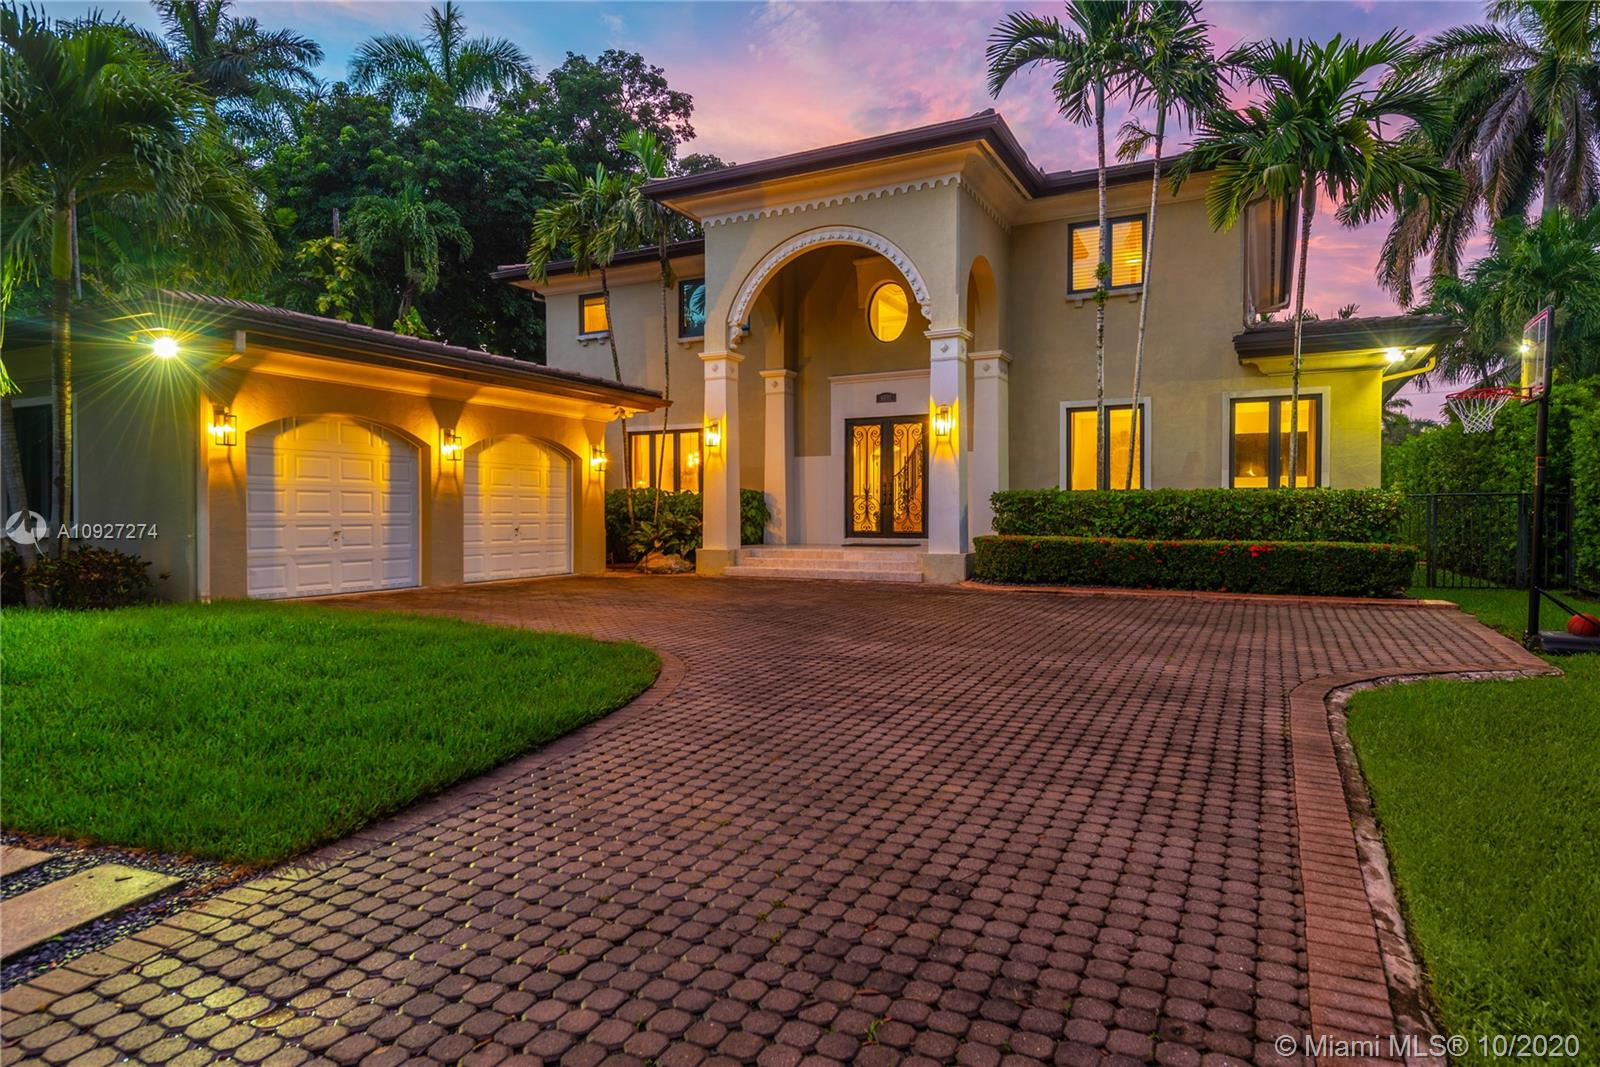 Gorgeous, fully gated home situated on a tranquil street on one of S. Miami's most coveted neighborhoods. This meticulously appointed home features a grand marble staircase with volume high ceilings upon entry. Spacious and inviting, this Smart Home offers formal living and dining areas, Chef's kitchen with top of the line appliances, an adjacent family room which overlooks a pristine pool. Guest bedrooms are ensuite with large custom walk in closets.The Master bedroom suite includes a newly remodeled bath and huge 200SF walk in closet.Surround system (indoor/outdoor), LED lighting, full house generator, GarageTek system in the 2 car garage are a few of the many extras this residence offers. Close proximity to nationally ranked schools, the best hospitals and Dante Fascell Park.